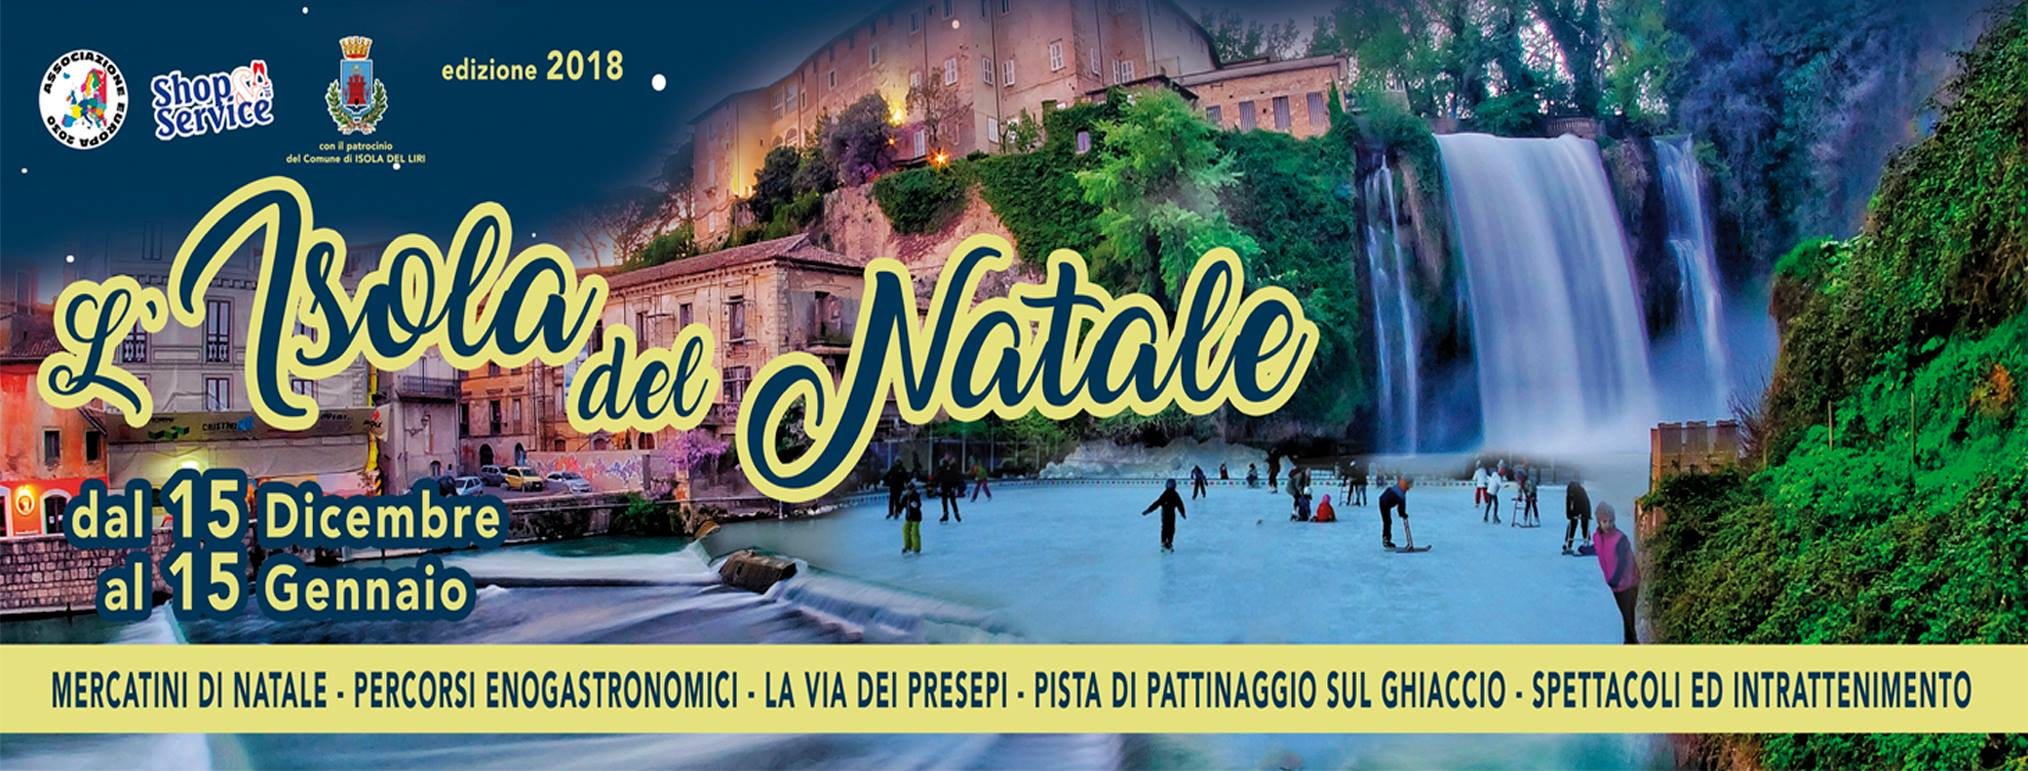 Isola del Natale